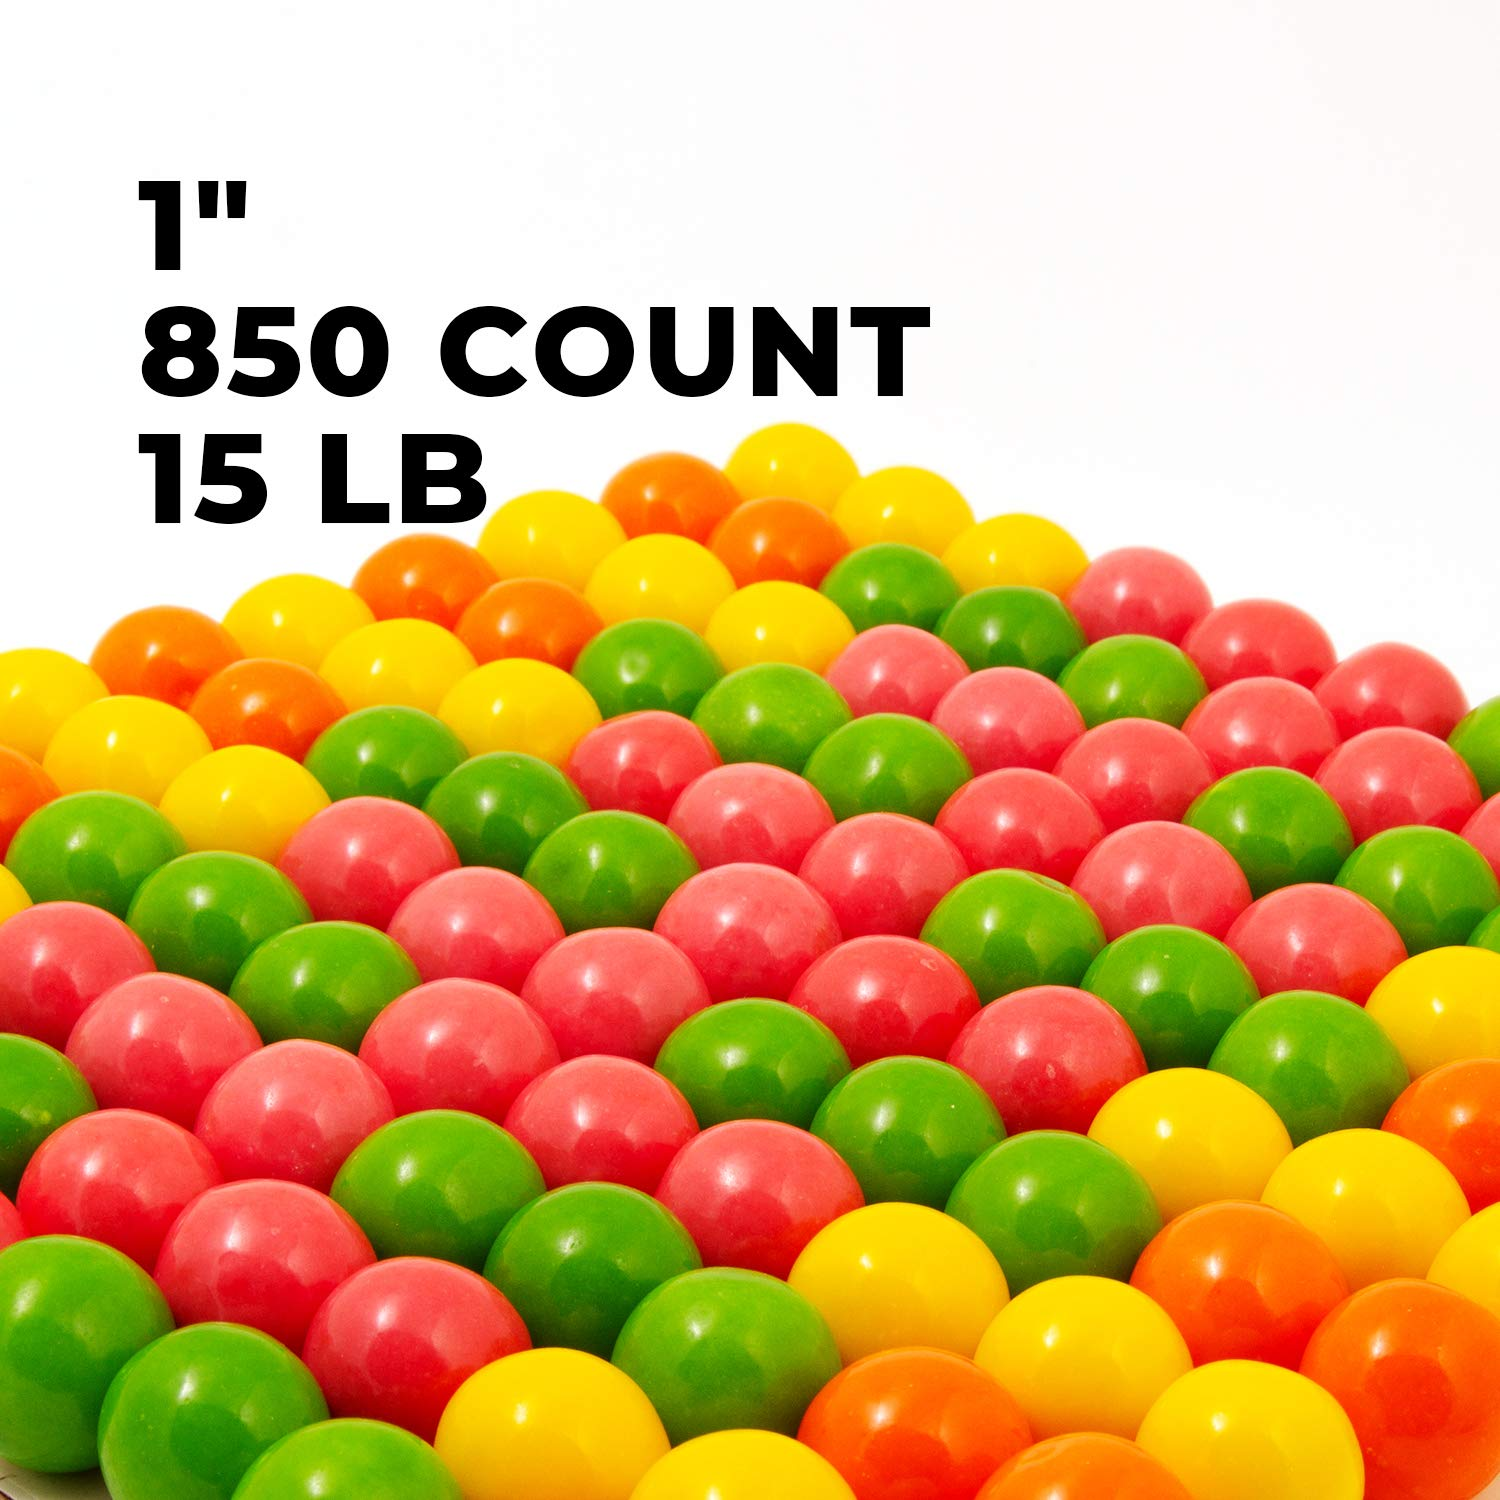 Gumballs for Gumball Machines - Bubble Brights - 1 inch box of 15 lb - Fresh Gumballs for Bulk Vending Machines - Gumball Machine Refills - Fruit Gumballs 25 mm 850 Count